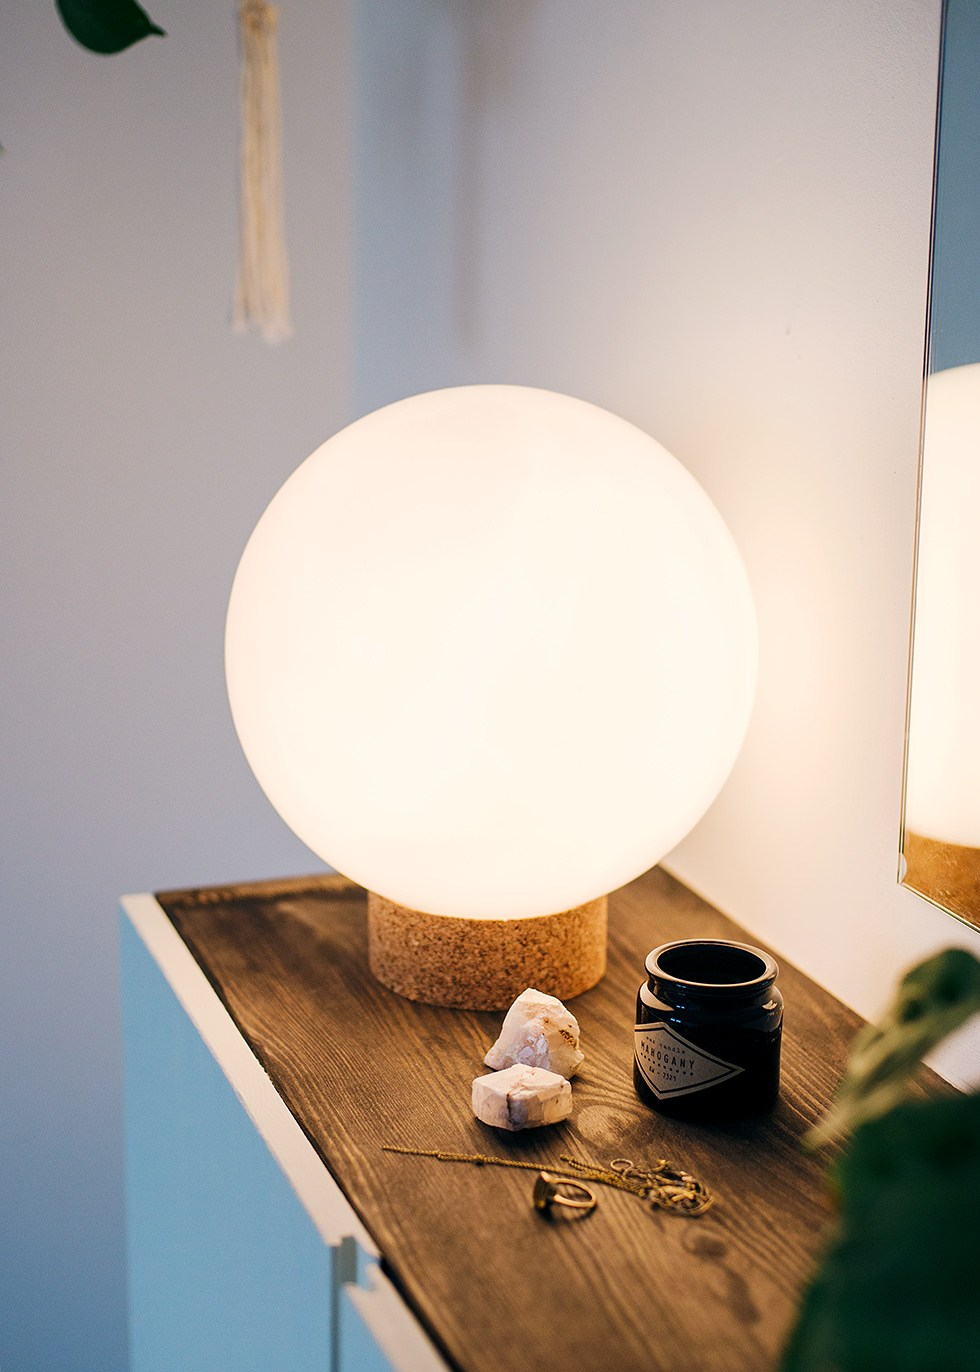 Round cork lamp DIY by Atilio